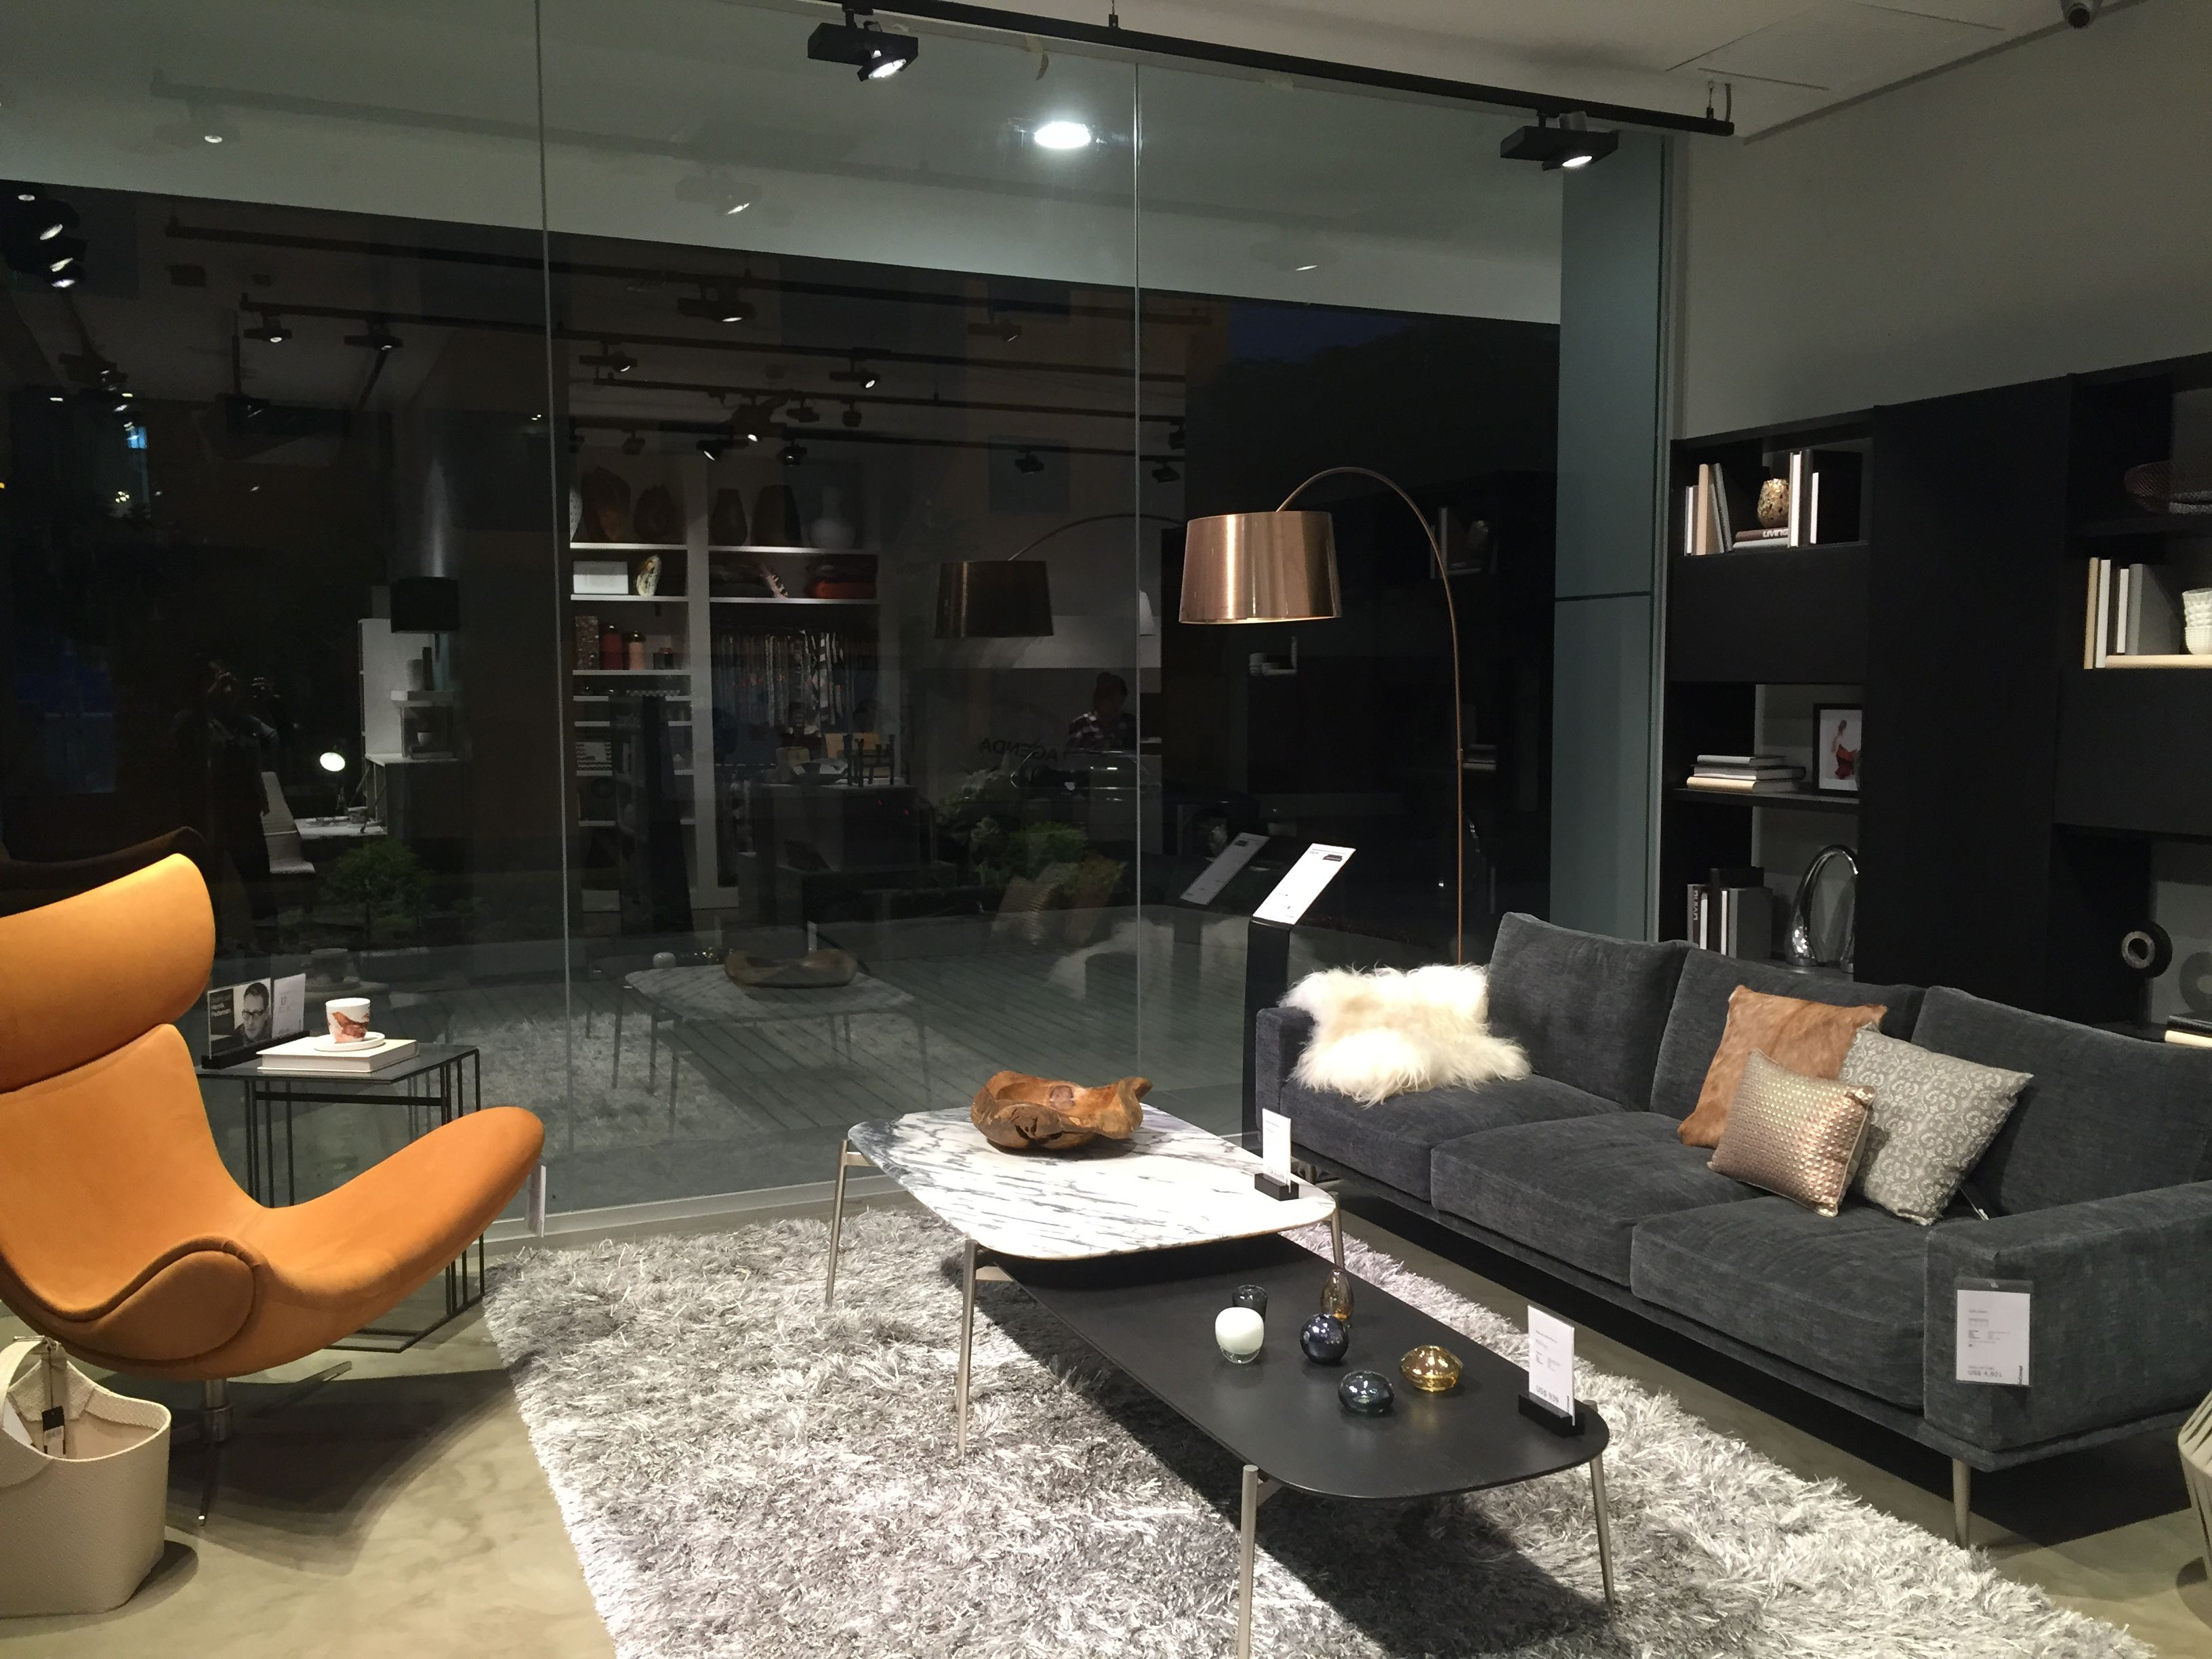 Finally Here It Is New Boconcept Store In Lima Peru End Result Very Inspiring Boconcept Home Deco Home